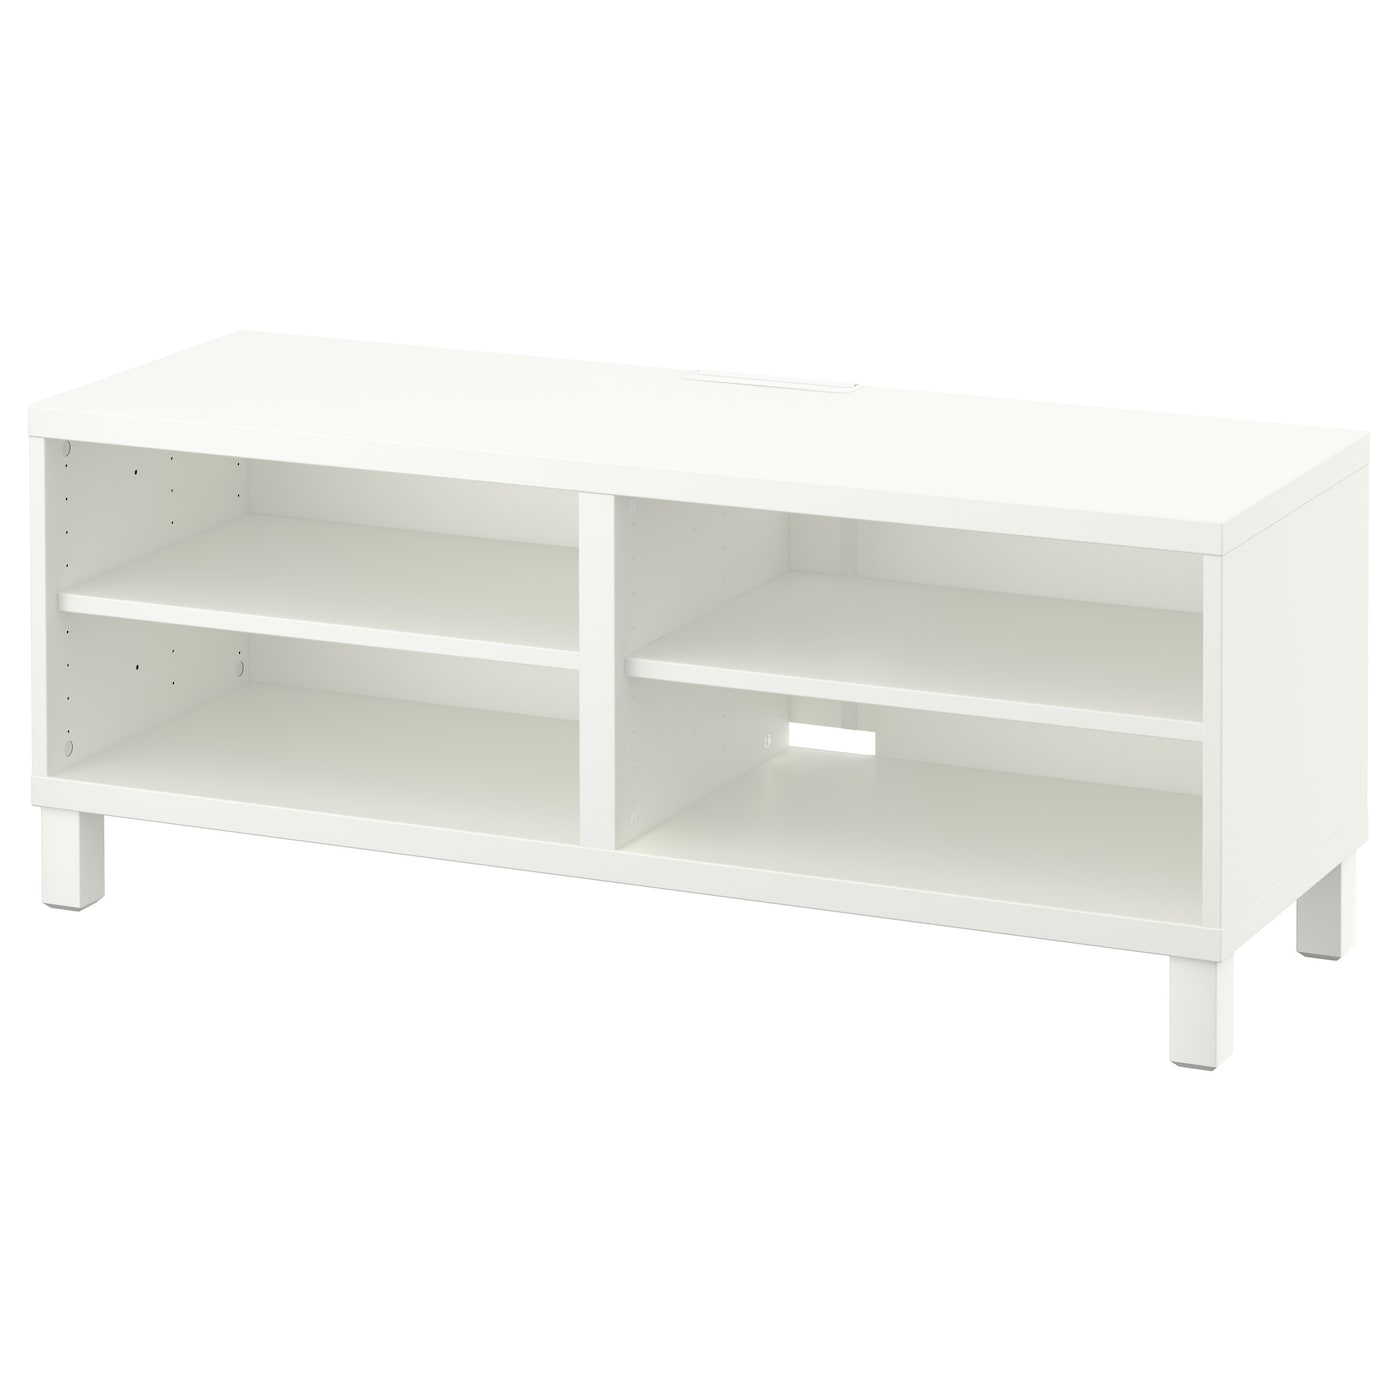 IKEA BEST TV Bench The Cable Outlet At Back Makes It Easy To Gather And